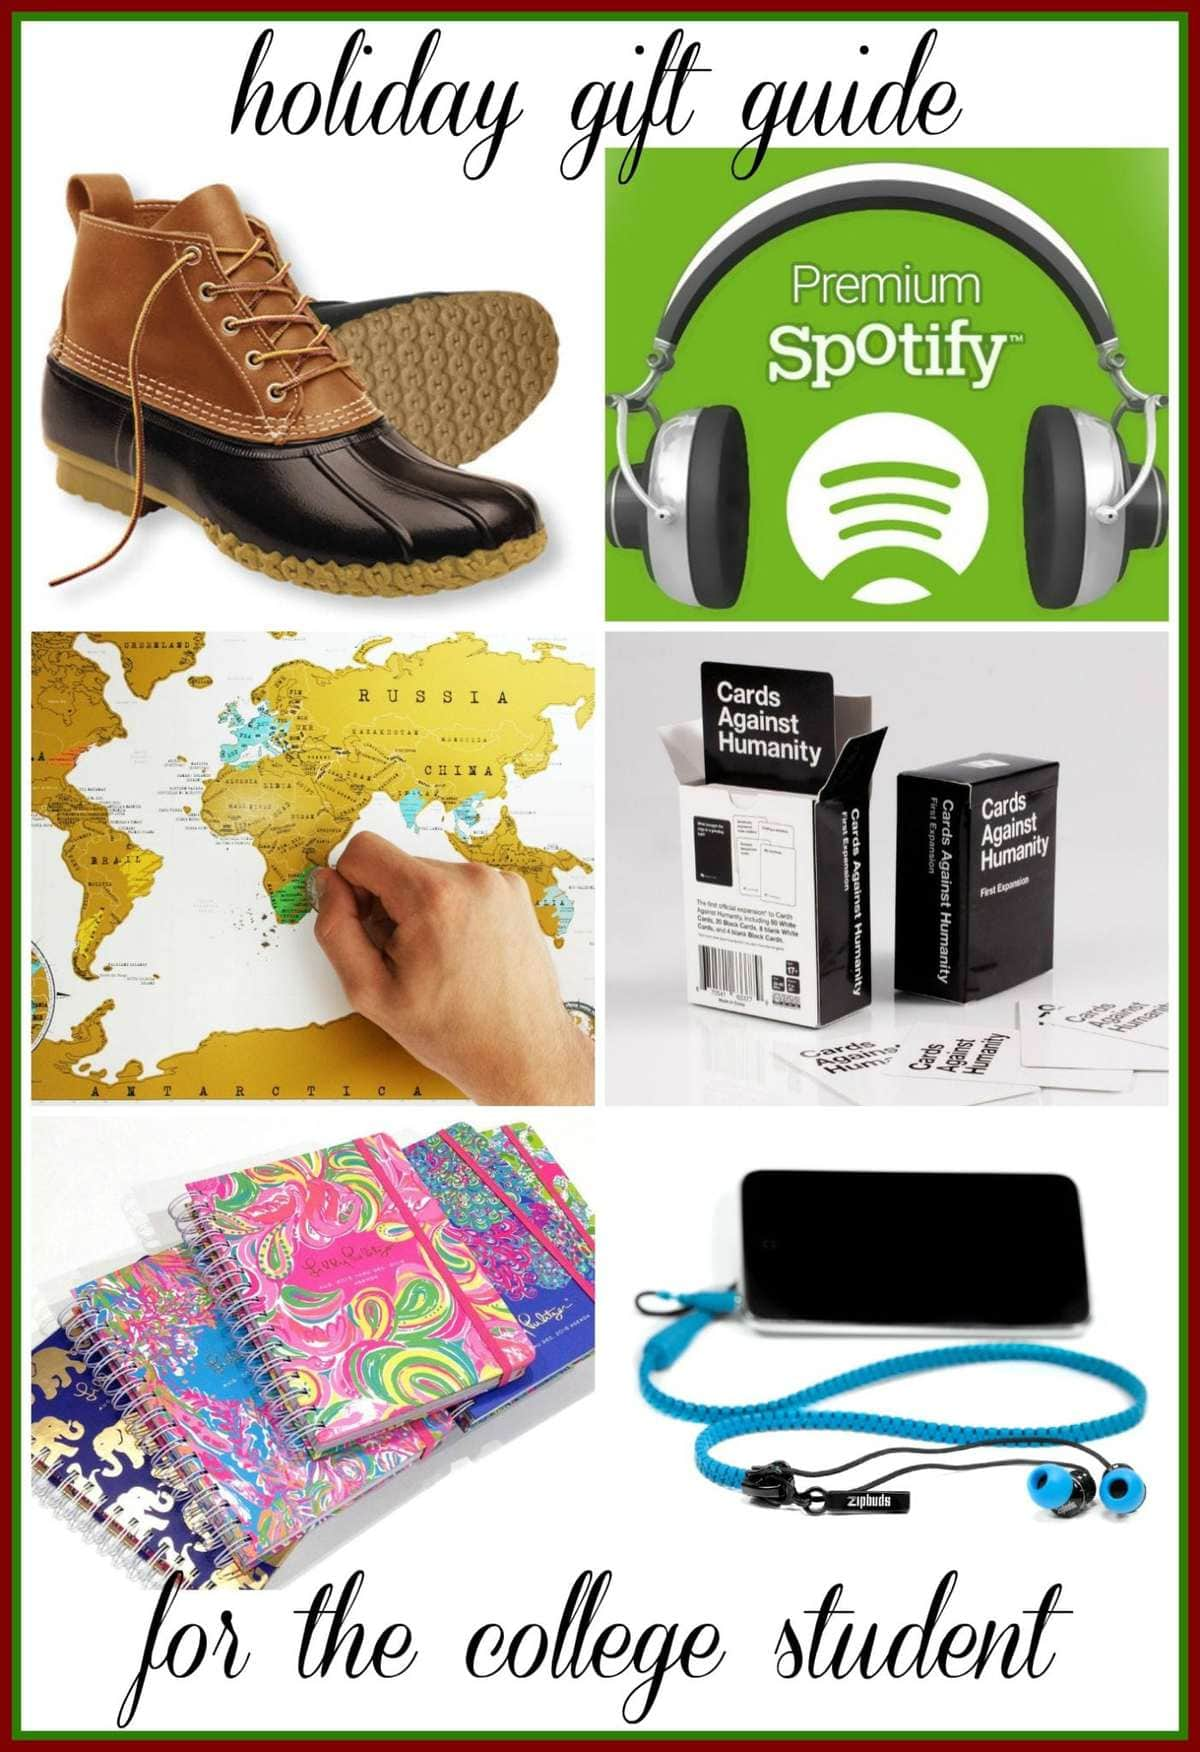 holiday gift guide for a college student